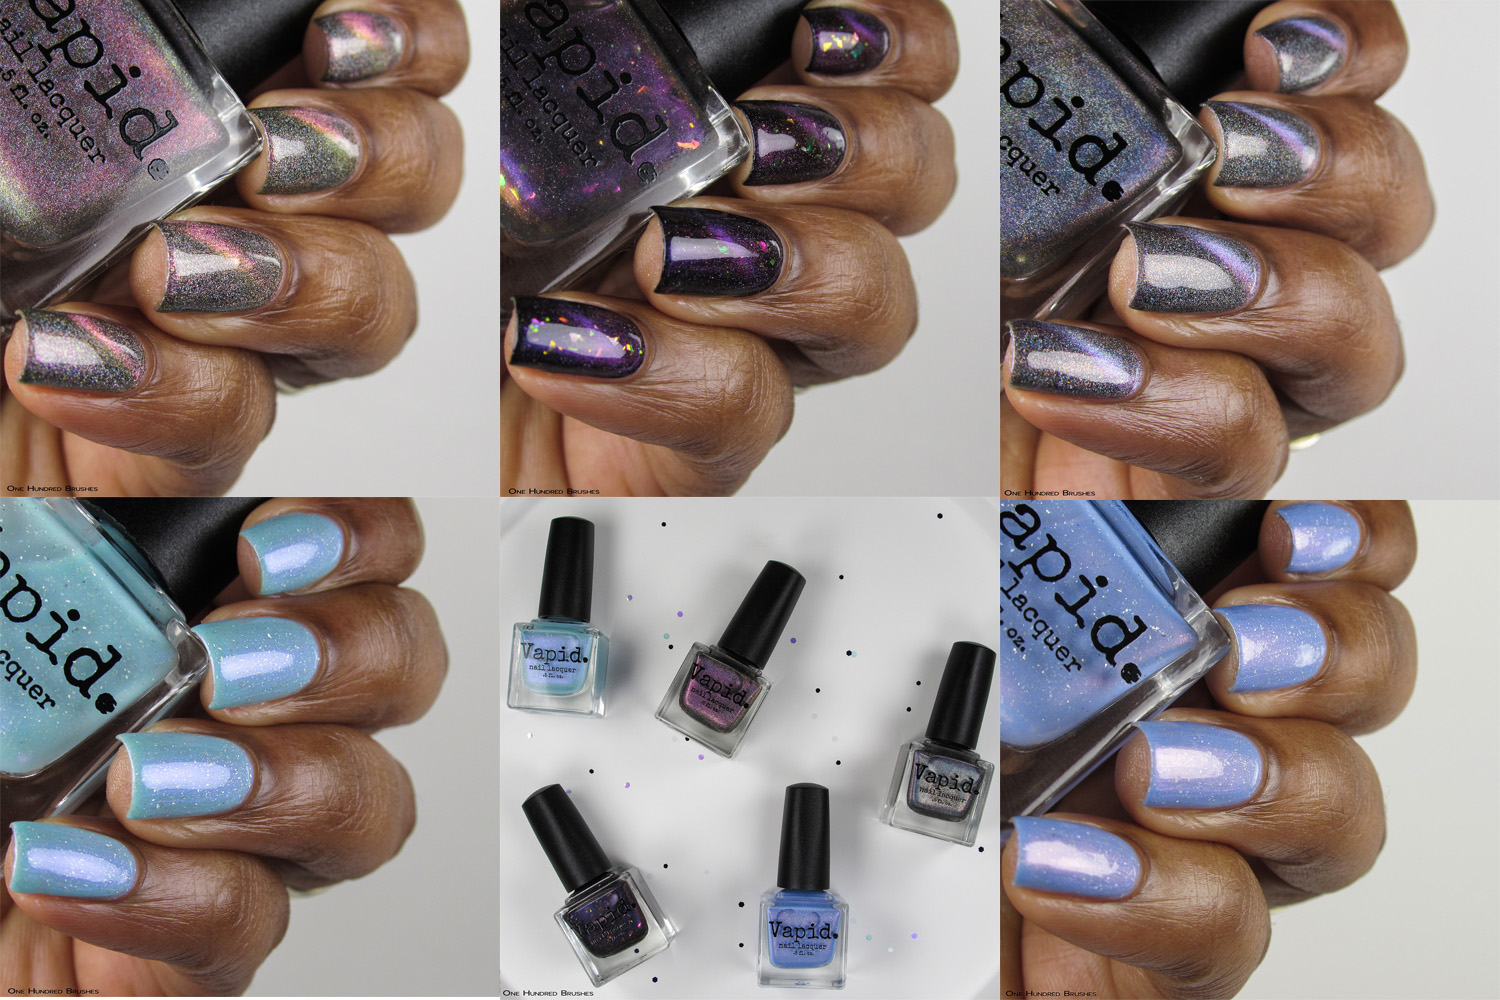 May Releases 2018 Collage Bottle Side - Vapid Lacquer